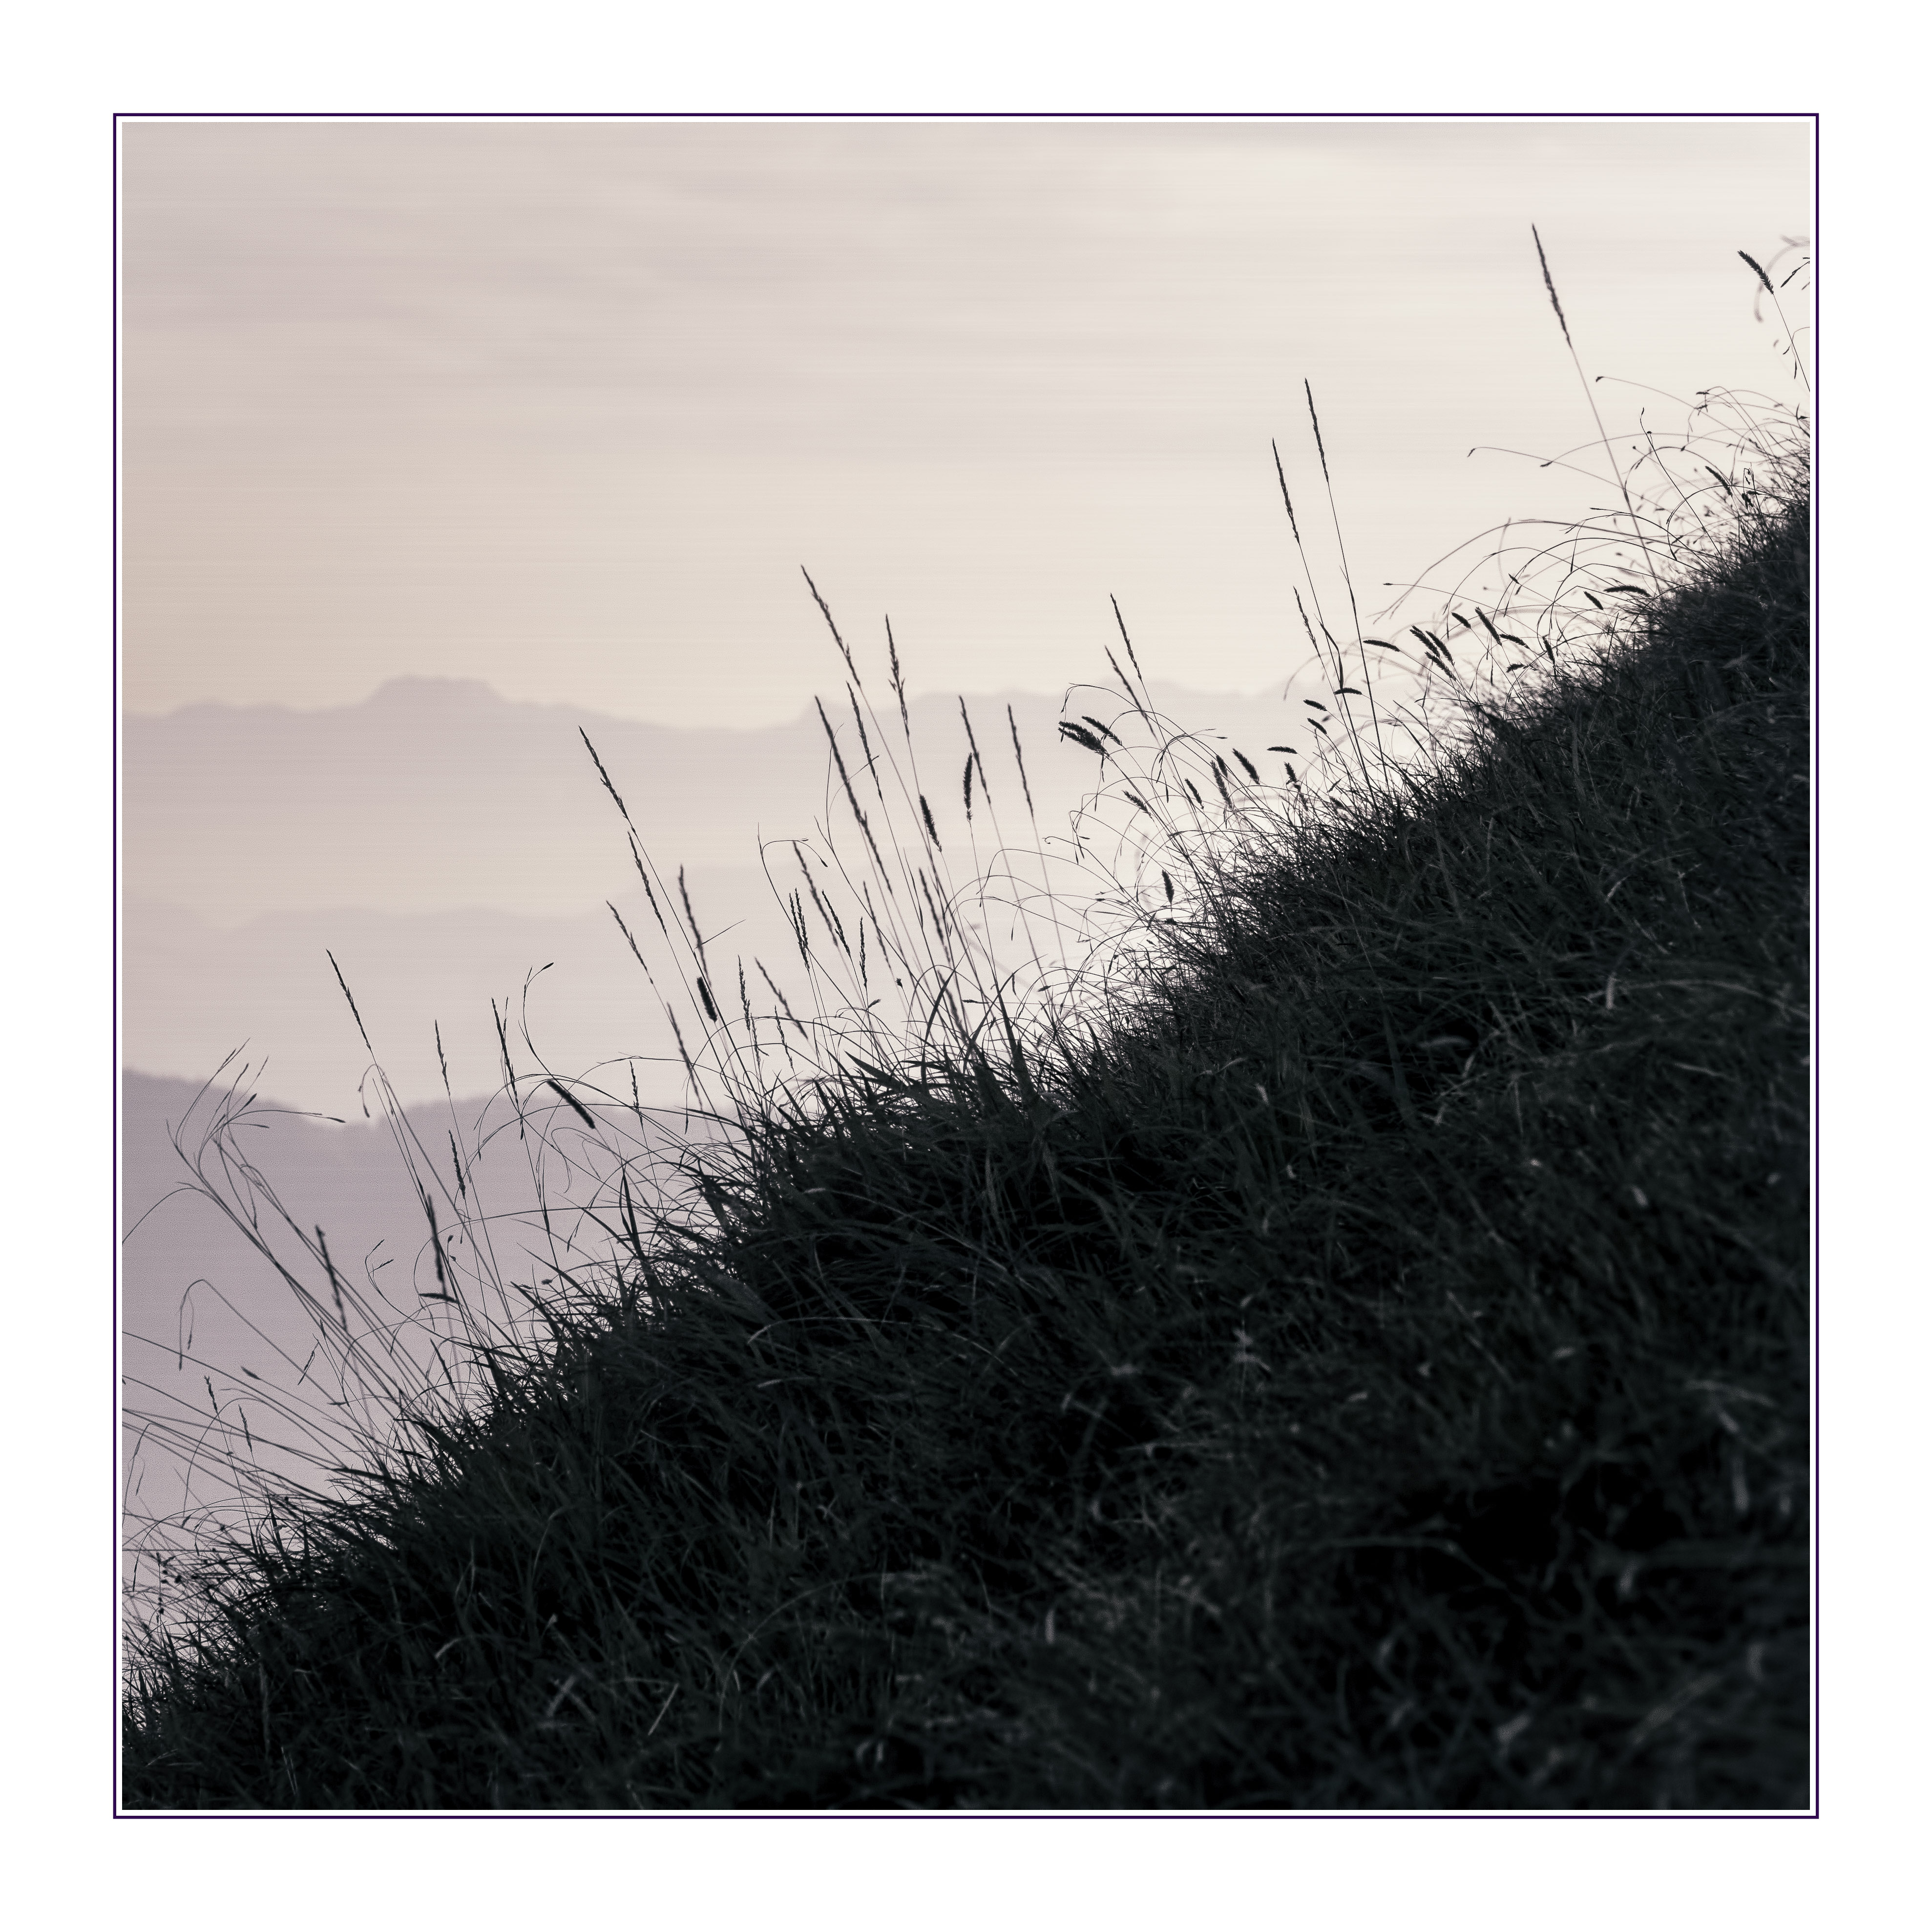 3956x3956 Free Images Grass, Black And White, Line, Soil, Austria, Sketch